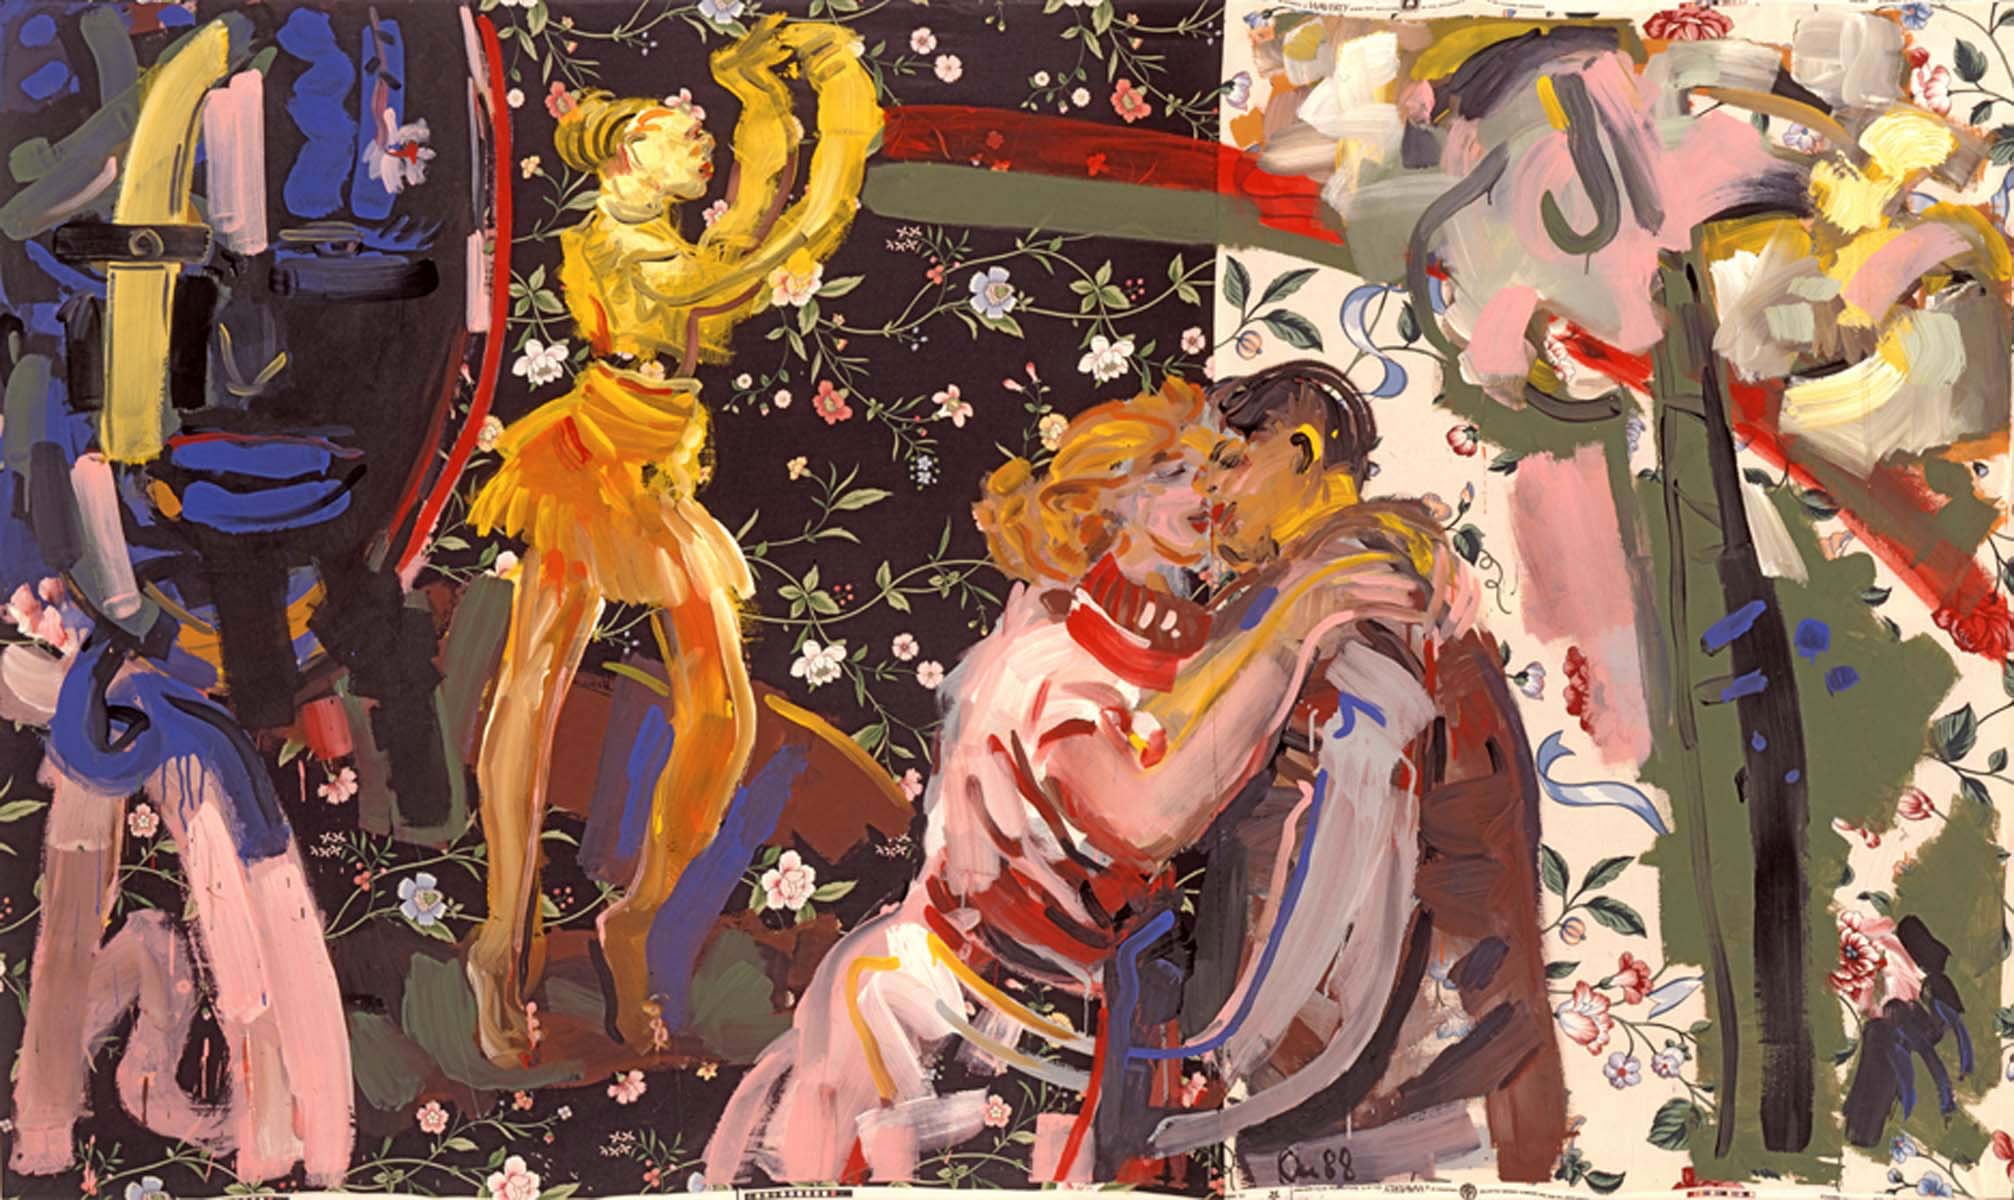 1988-37_nice-to meet-you_1988_acryl-stoff_133x223cm